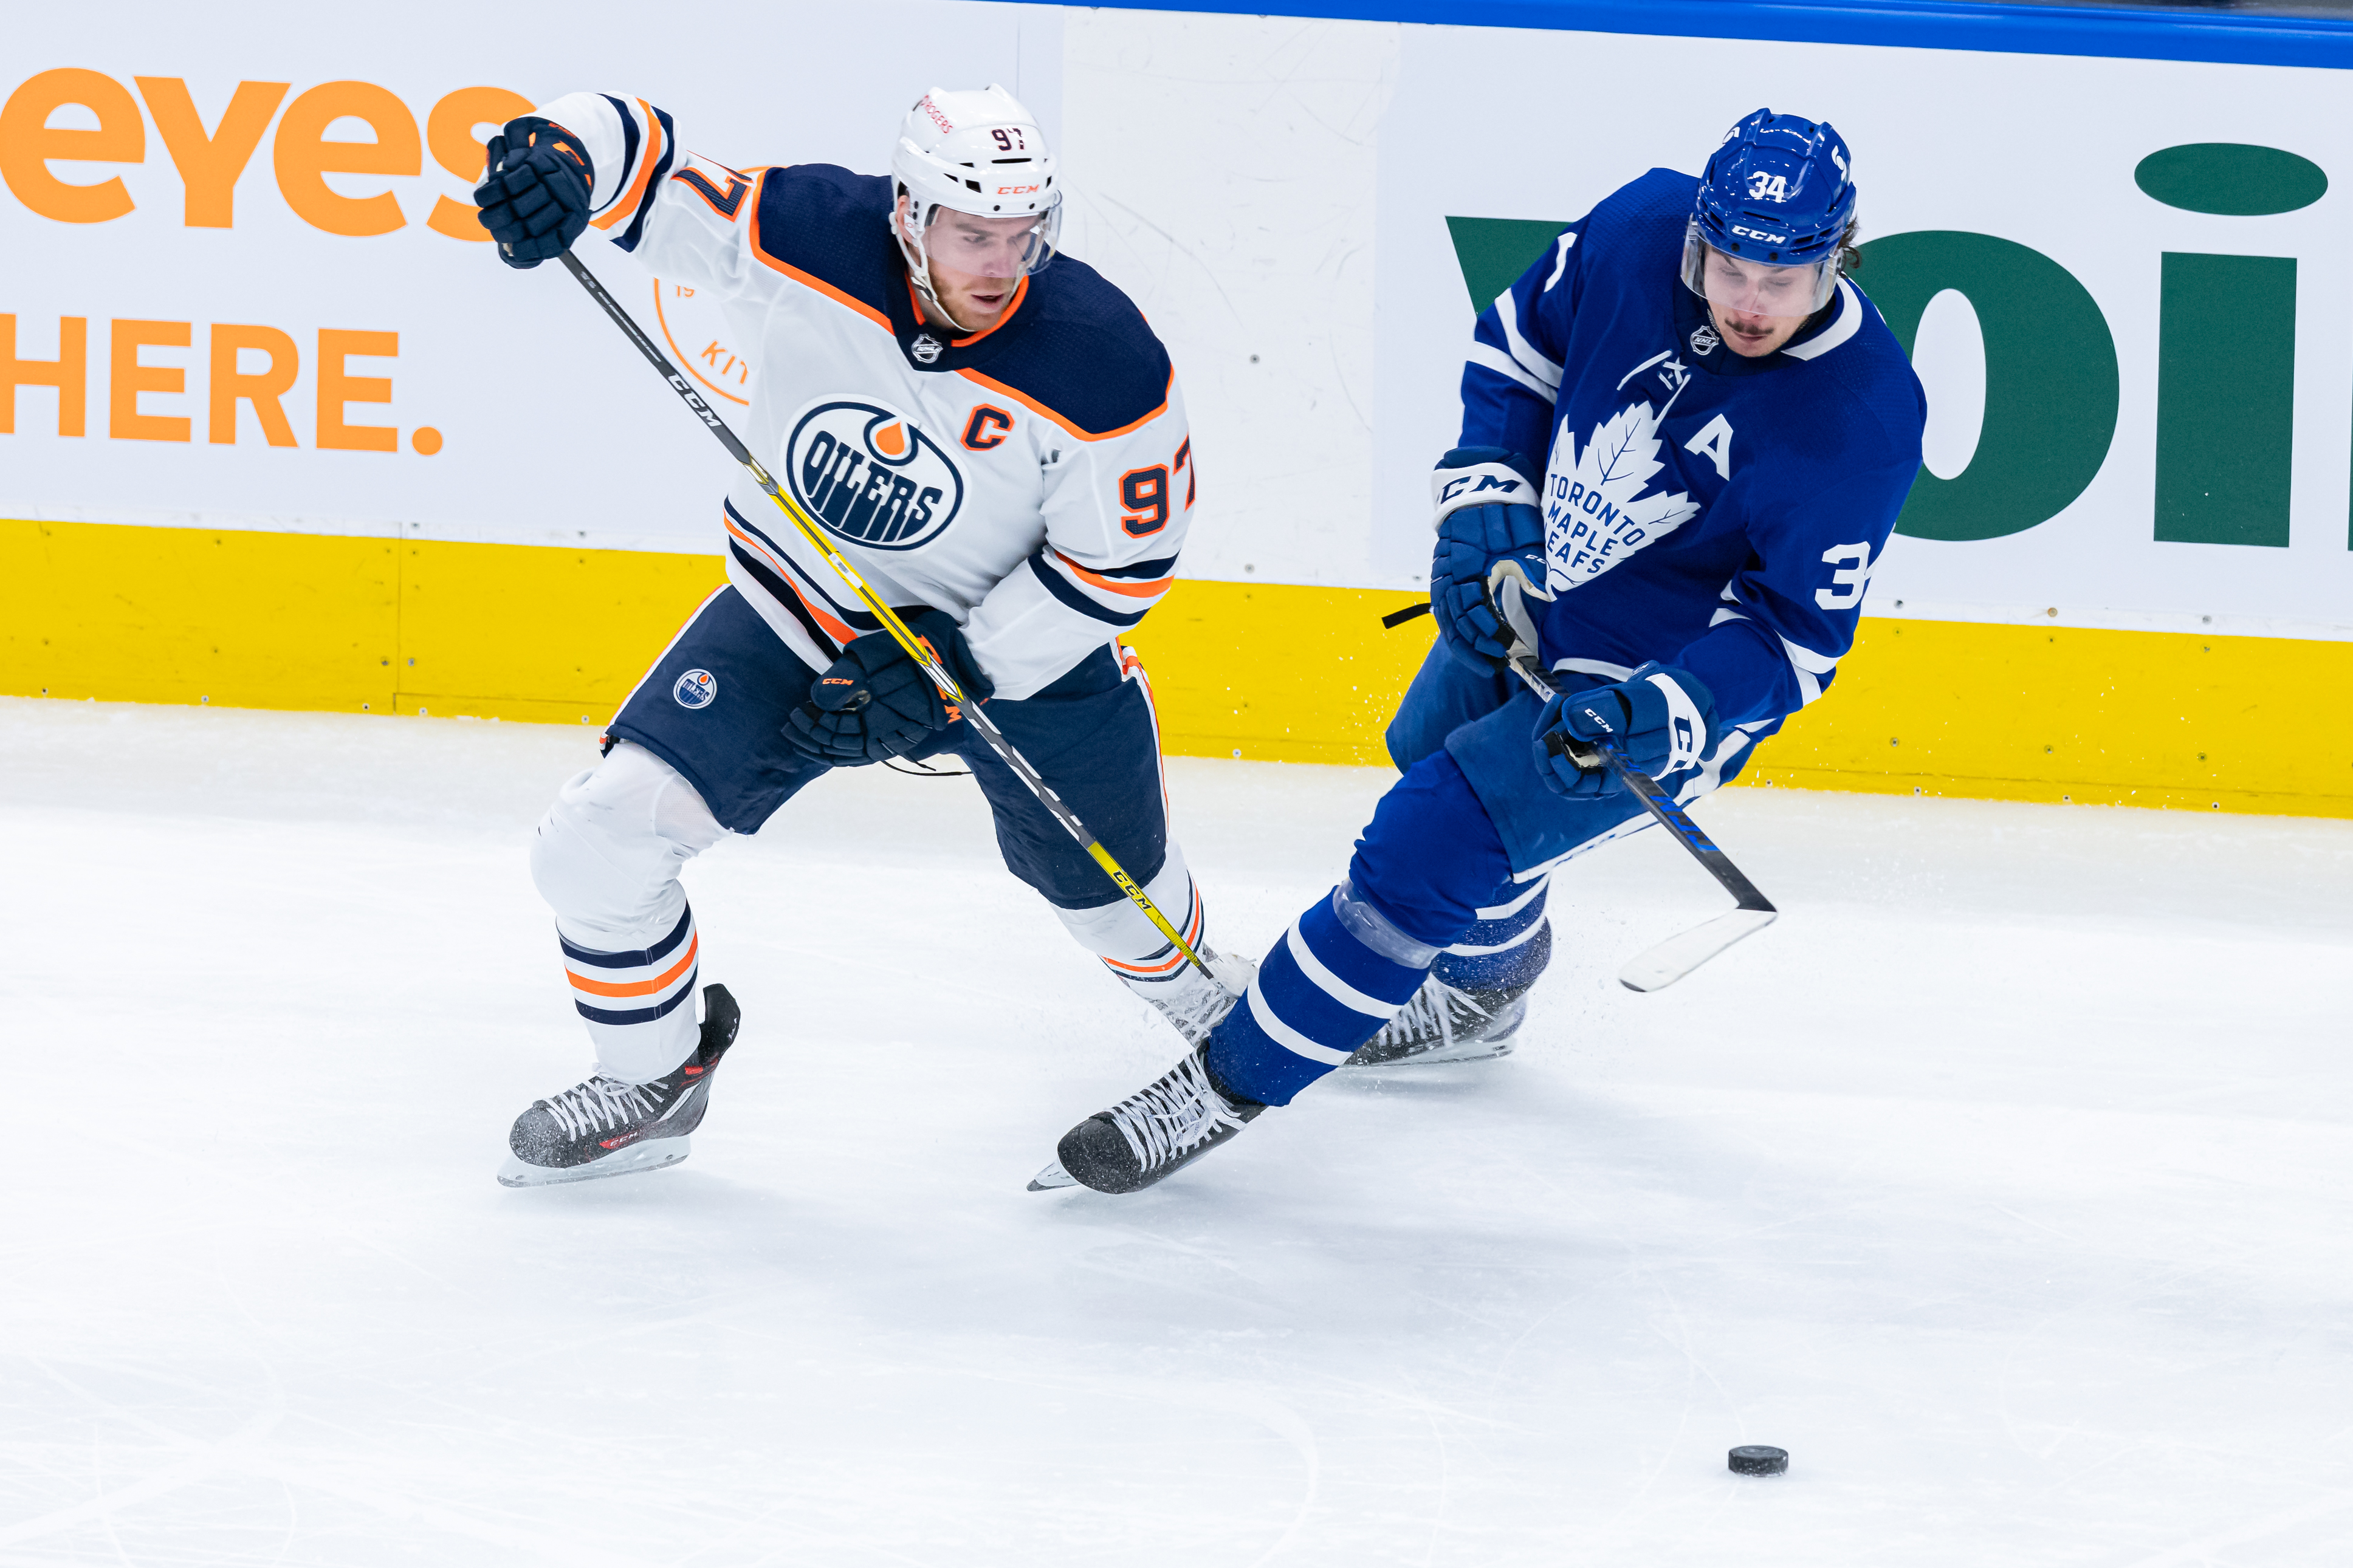 NHL: MAR 29 Oilers at Maple Leafs